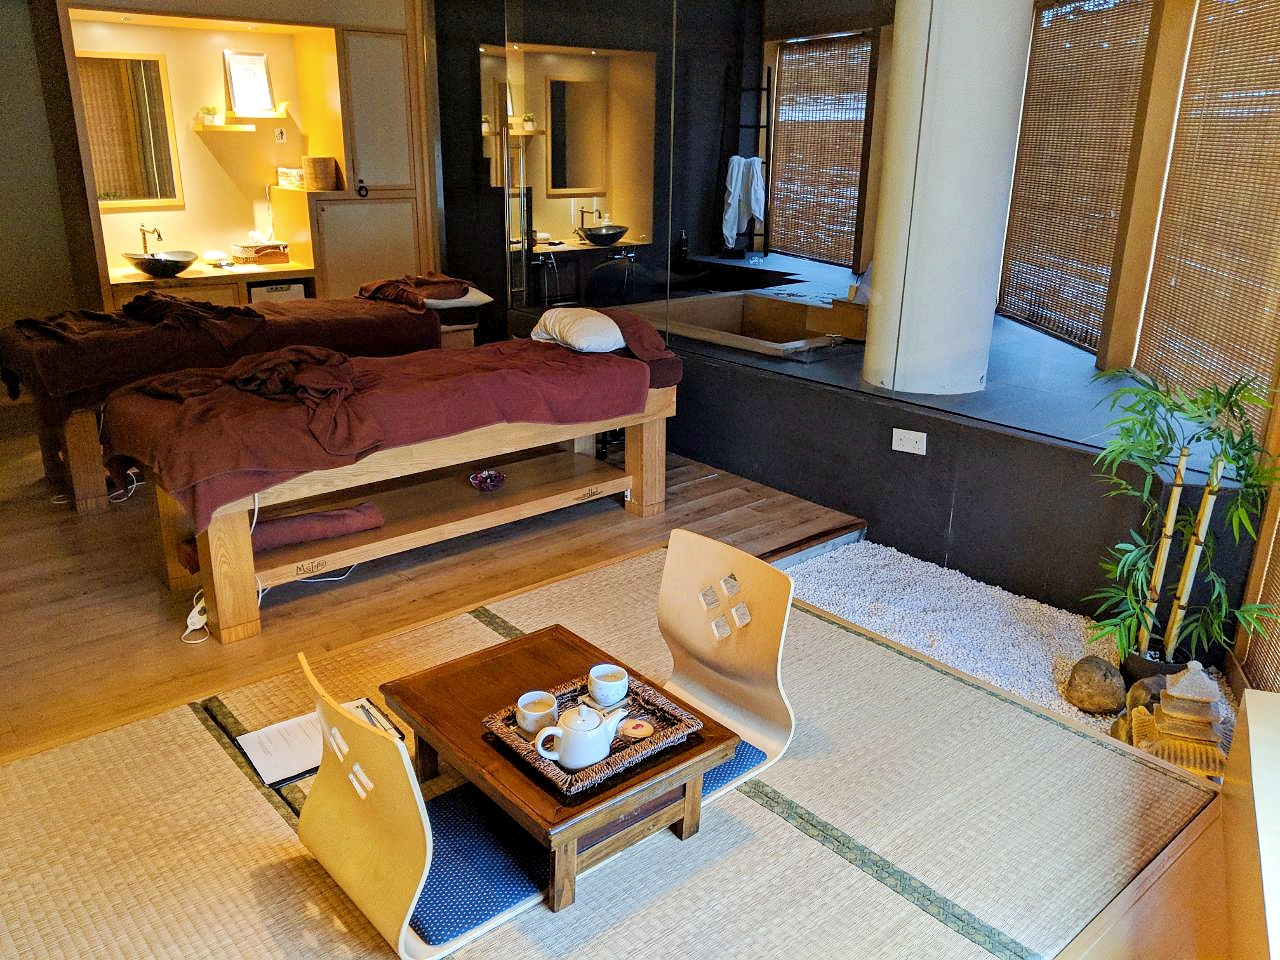 After the relaxing onsen experience, you can proceed to the beds for your massage.